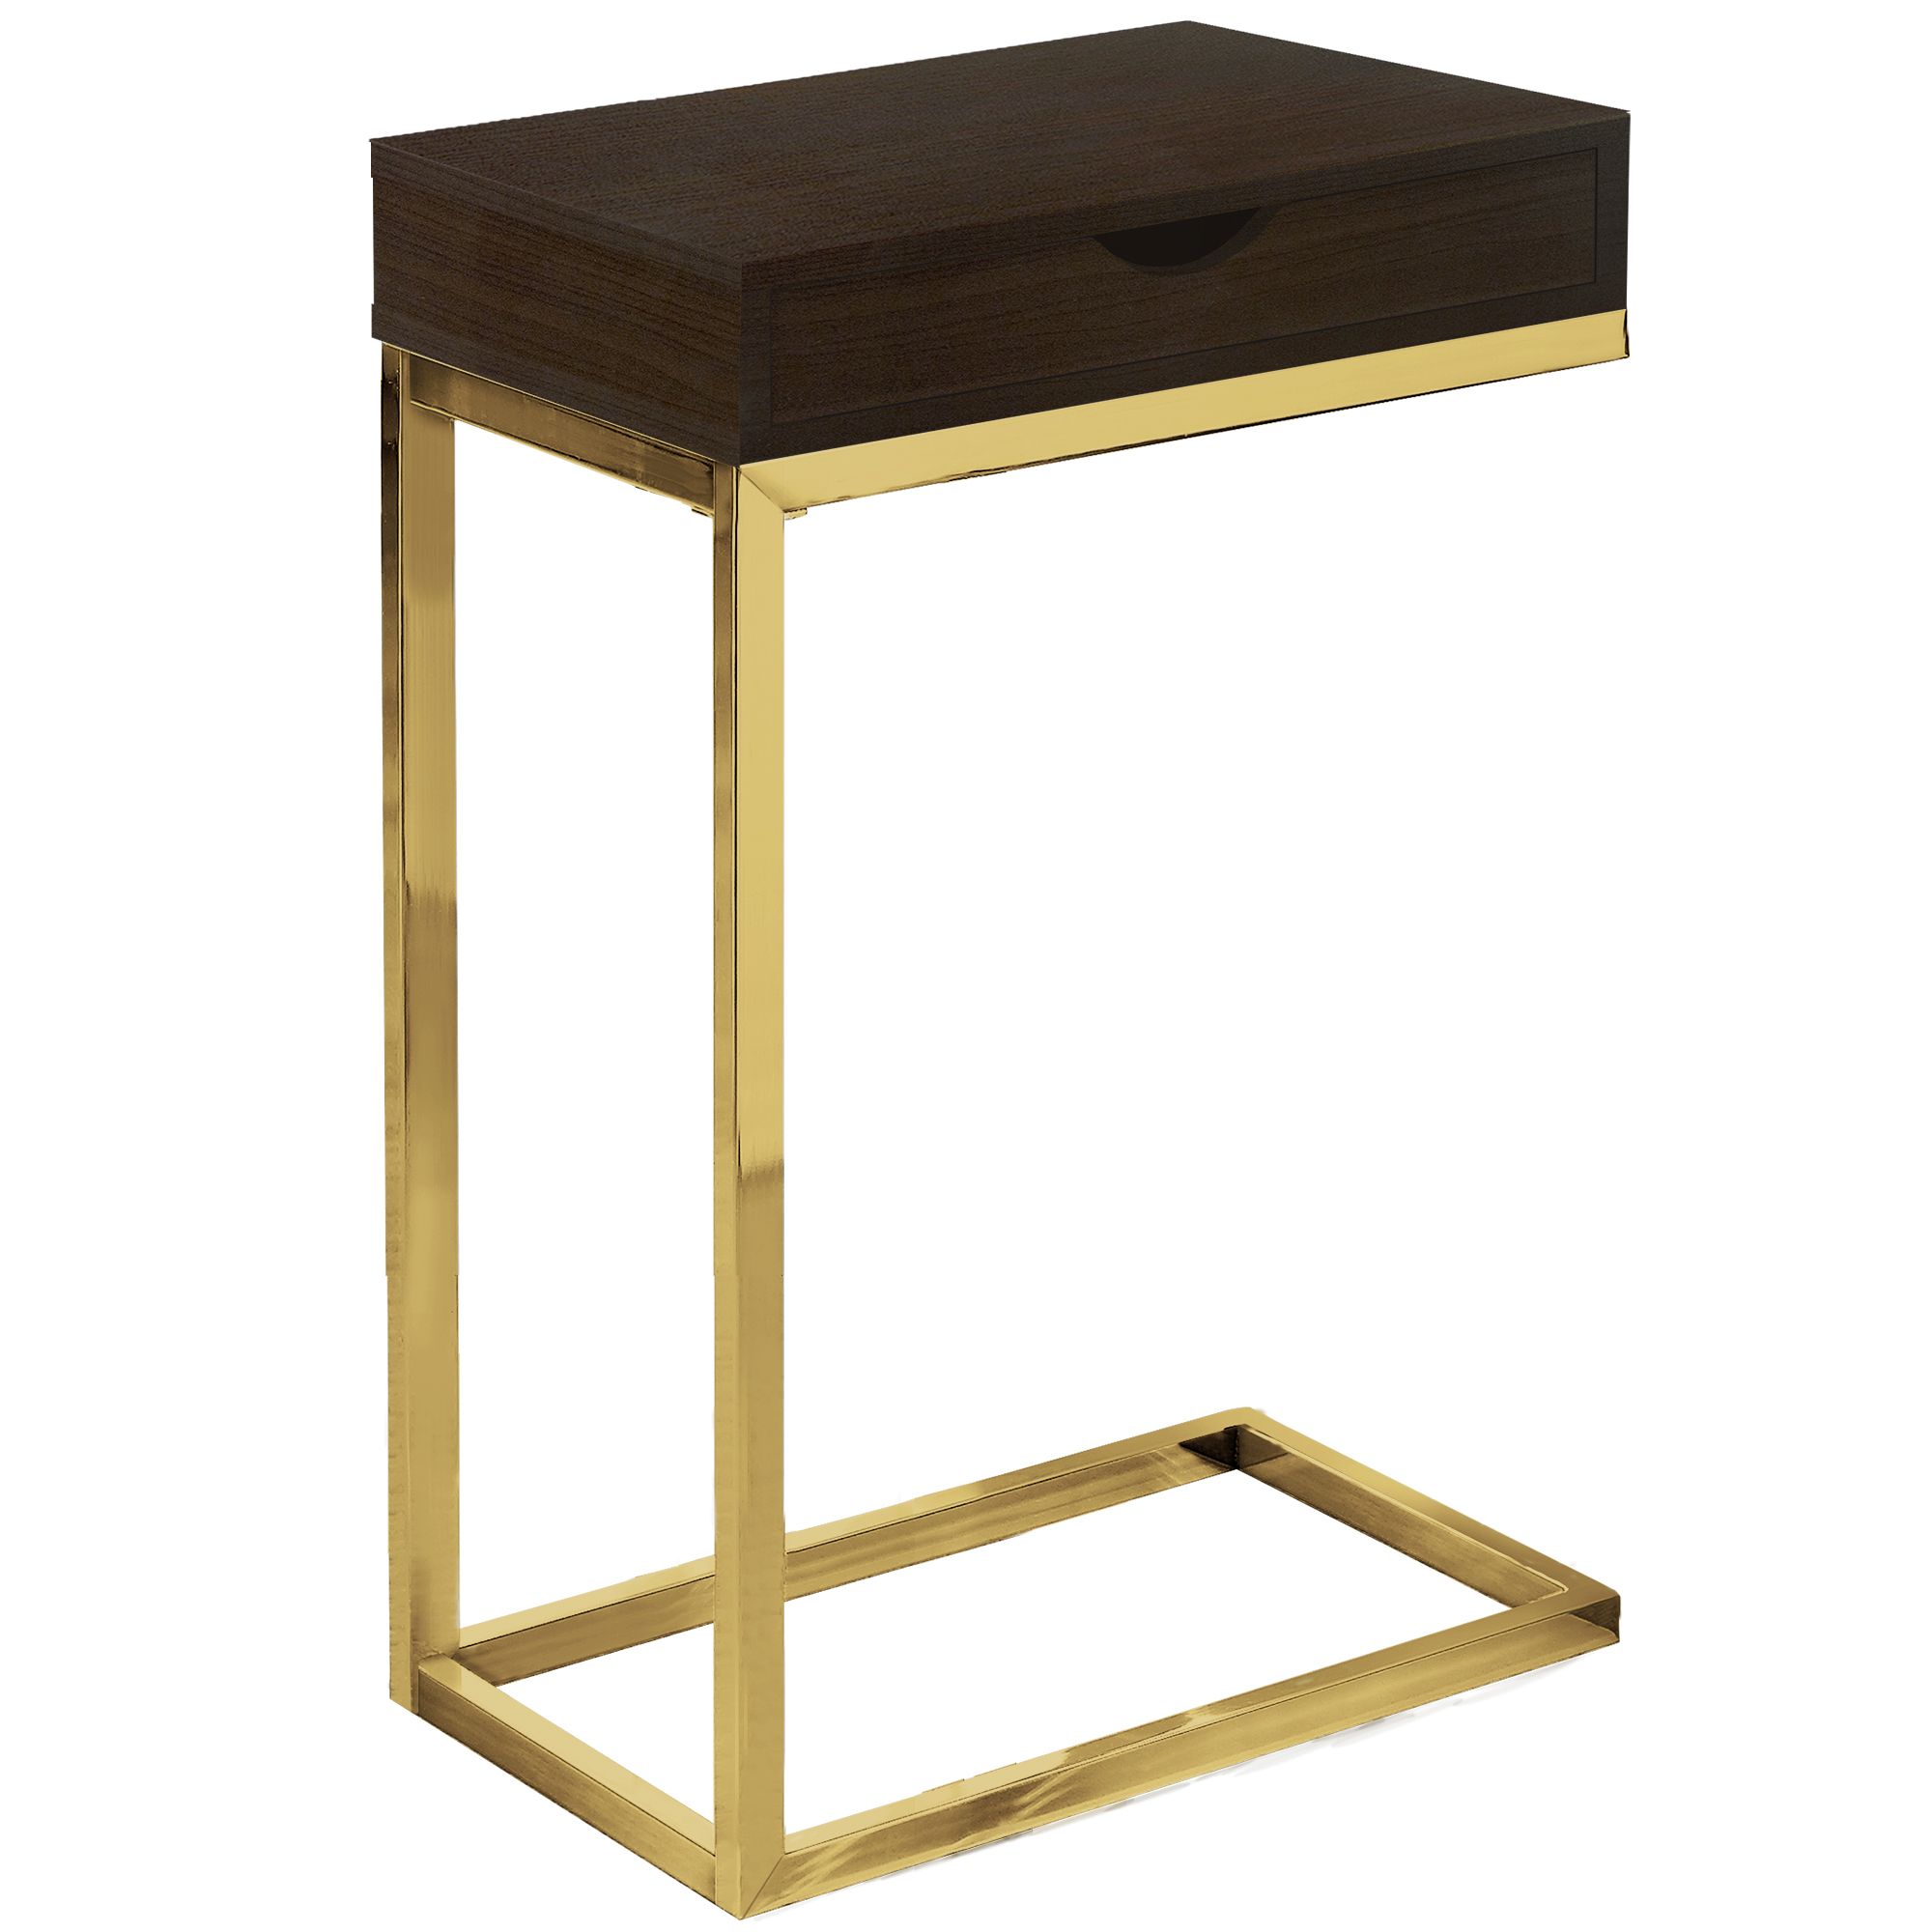 """10.25"""" x 15.75"""" x 24.5"""" Cappuccino Finish and Gold Laminated Drawer Accent Table"""